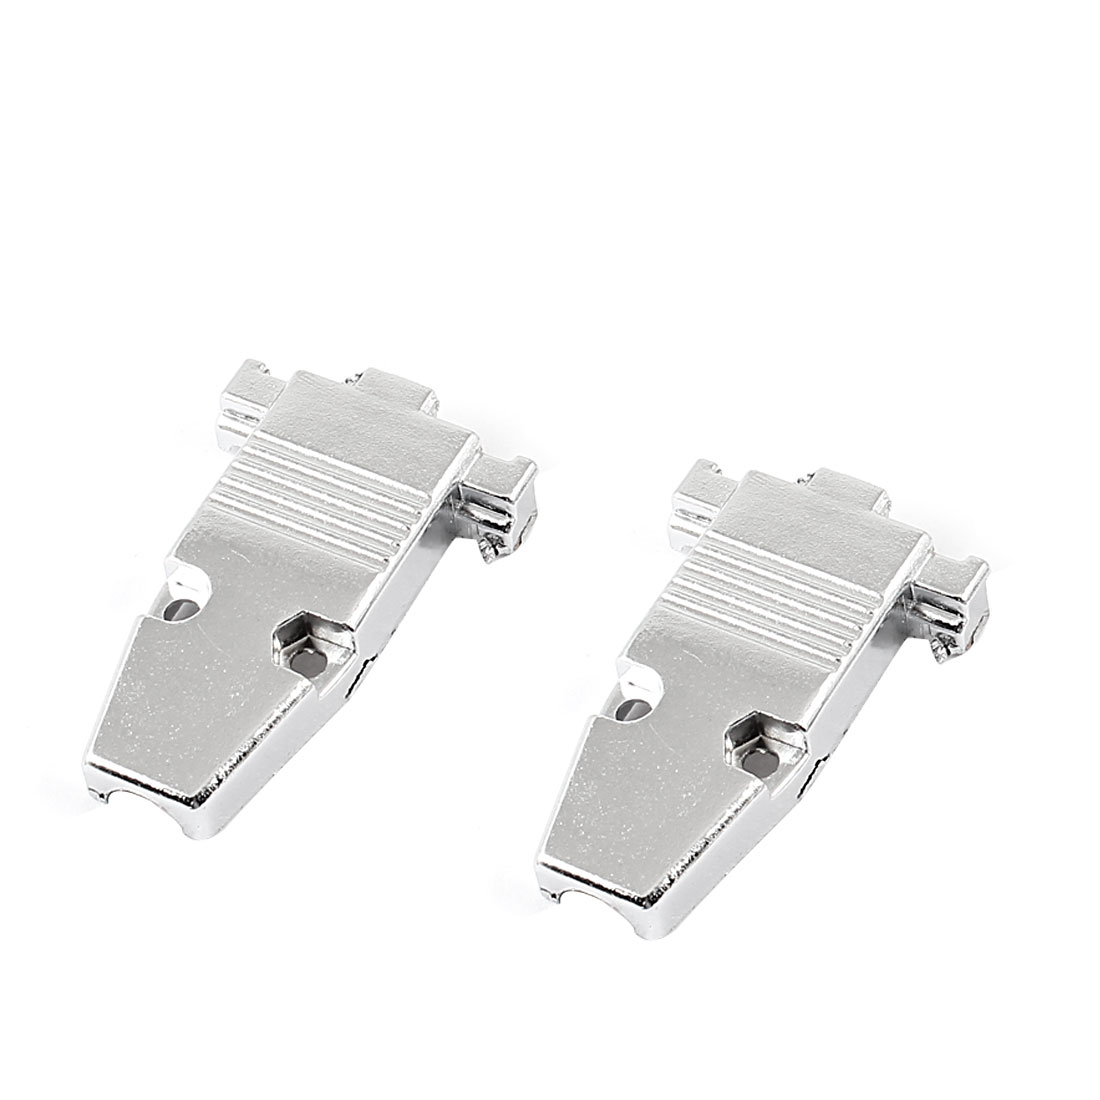 DB9 D-SUB Adapter Connector Metal Hood Cover Silver Tone 2 Pcs